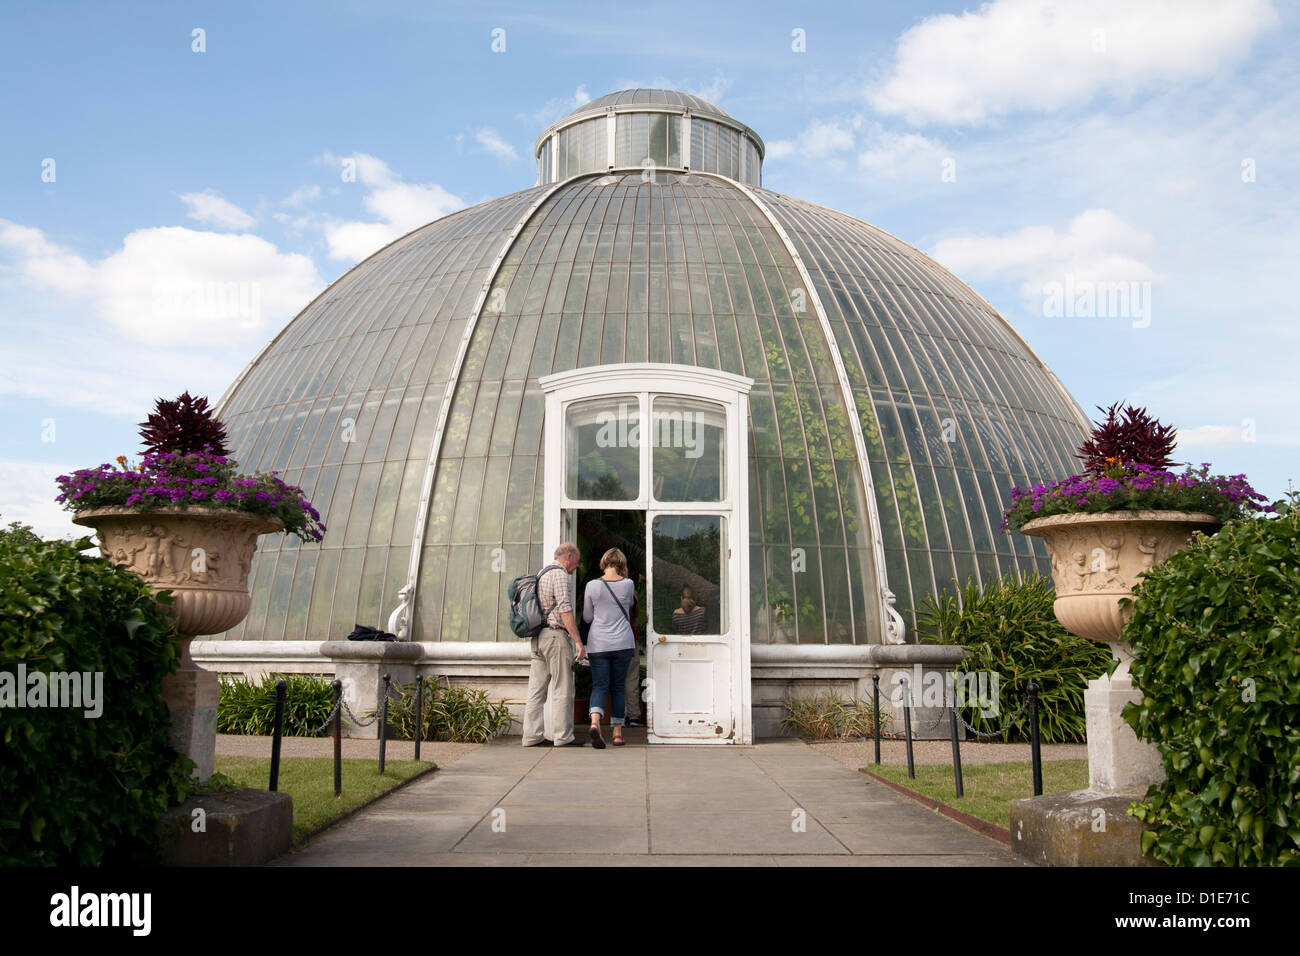 Palm House Dome, Royal Botanic Gardens, UNESCO World Heritage Site, Kew, near Richmond, Surrey, England, United - Stock Image